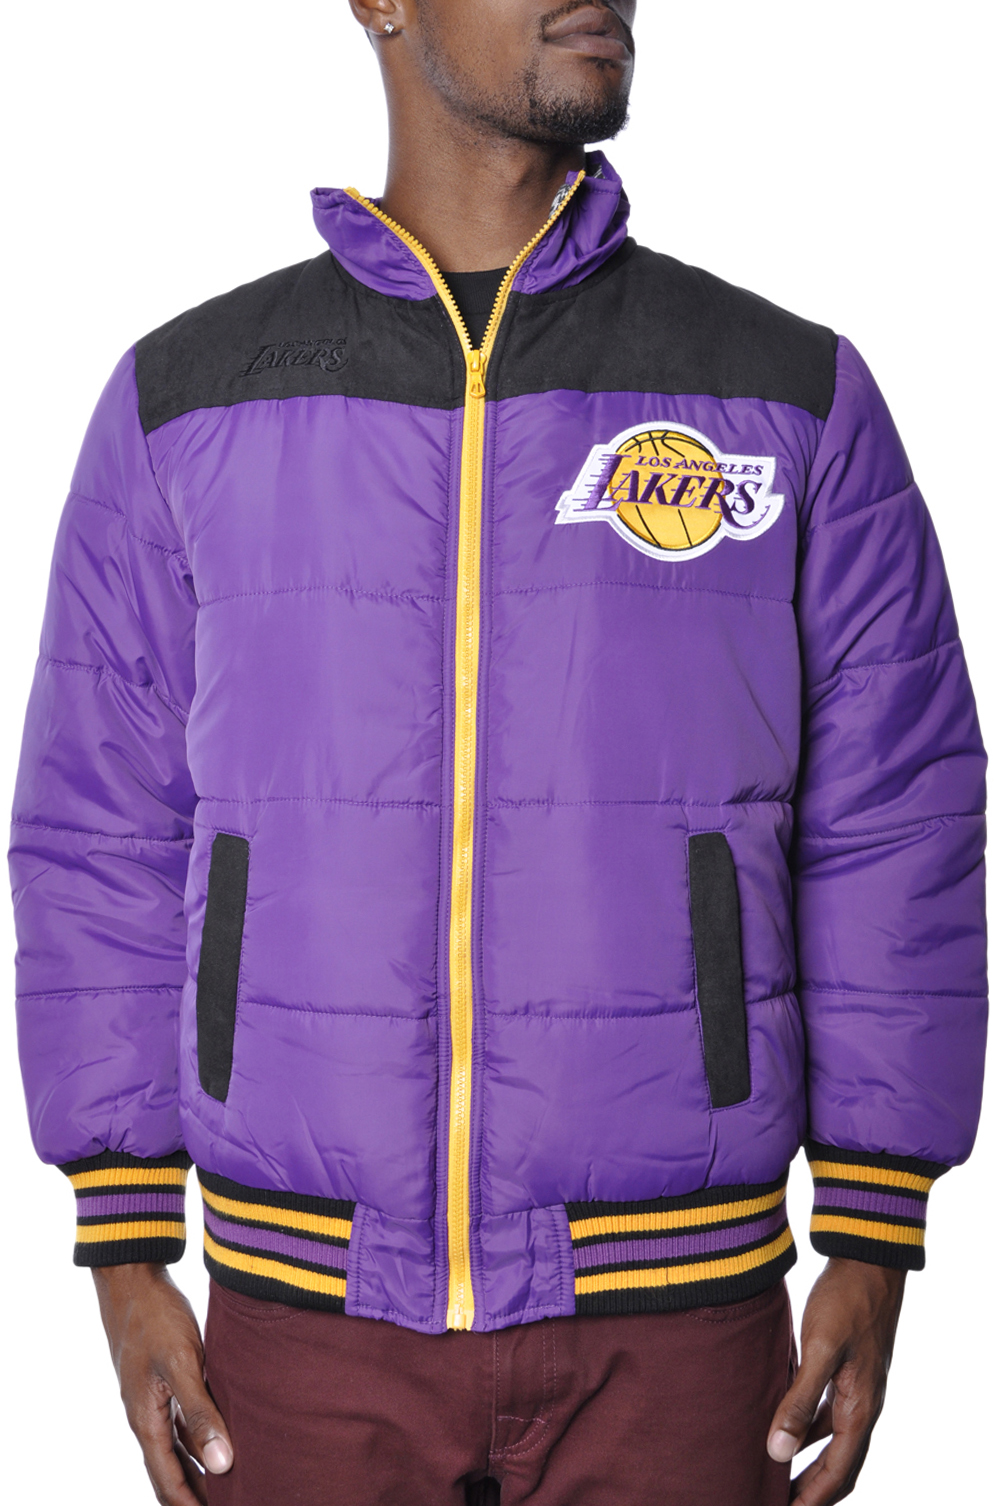 Los Angeles Lakers Insulated Jacket Zip Up Fleece Puffy Coat NBA Outerwear Mens by OFFICIAL LICENSED NBA